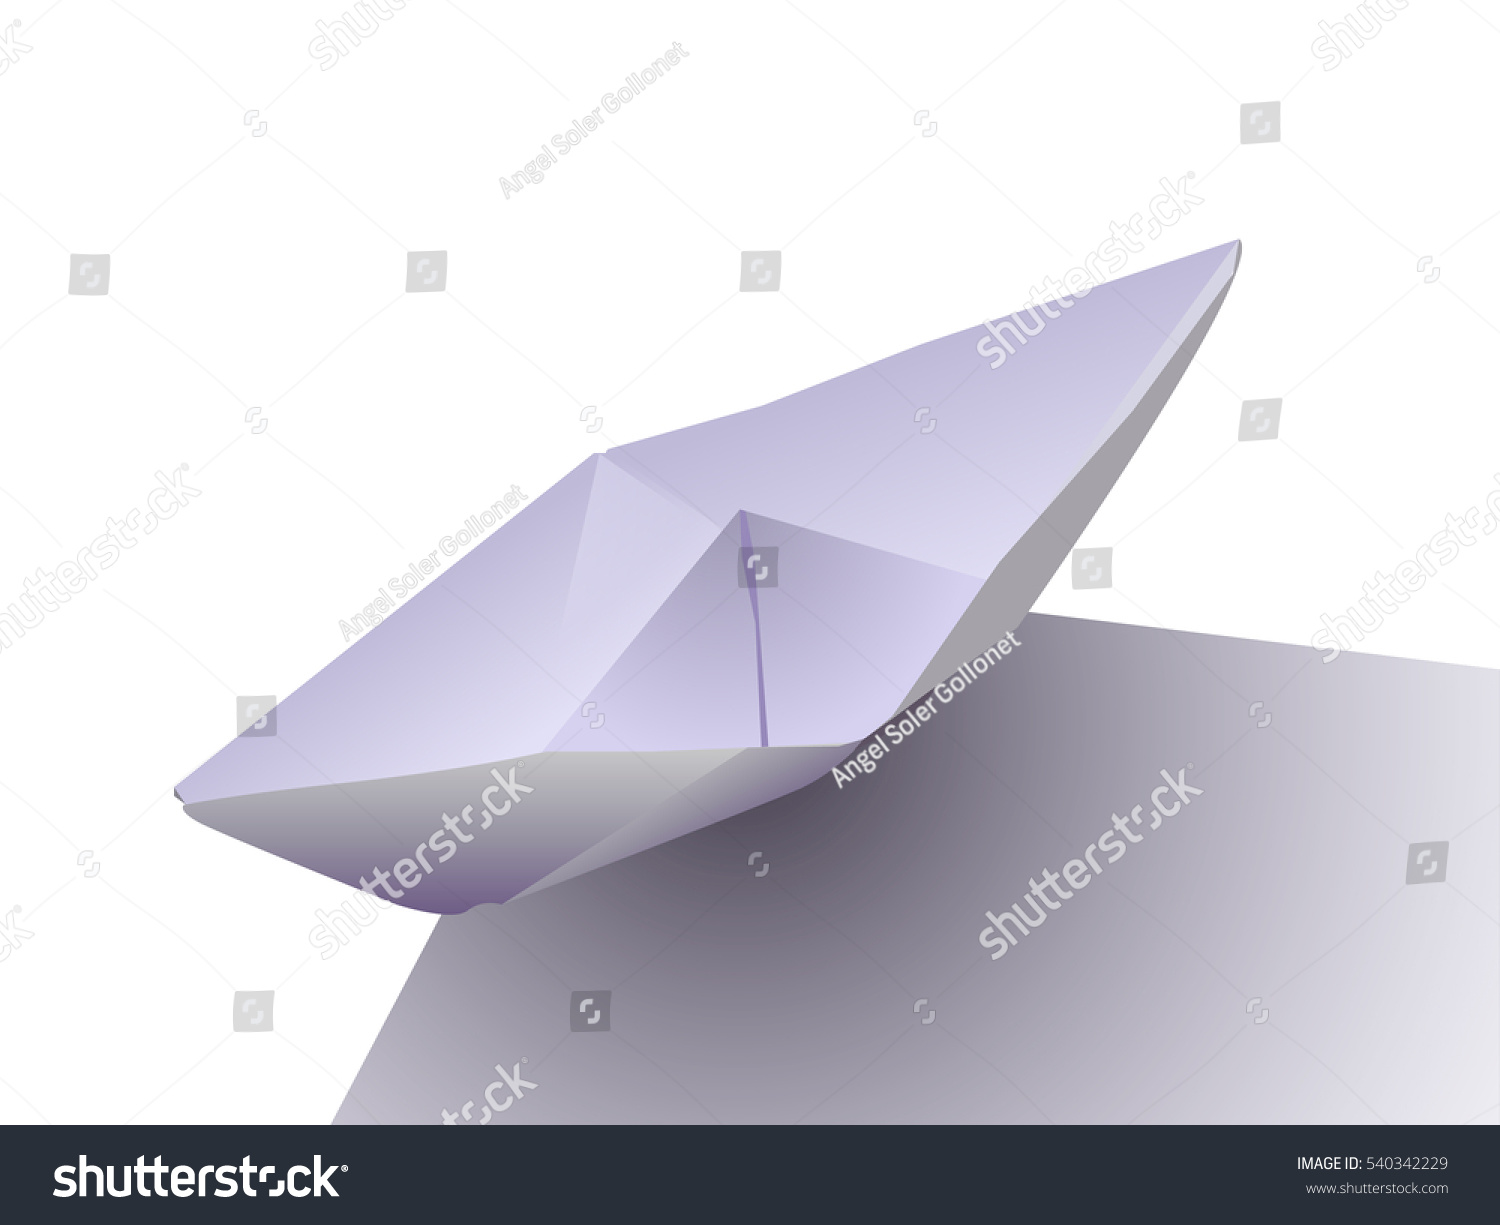 Paper Plane With Damaged Nose On Blue Background Concepts Crash Origami Angel Diagrams Failure Business Ez Canvas